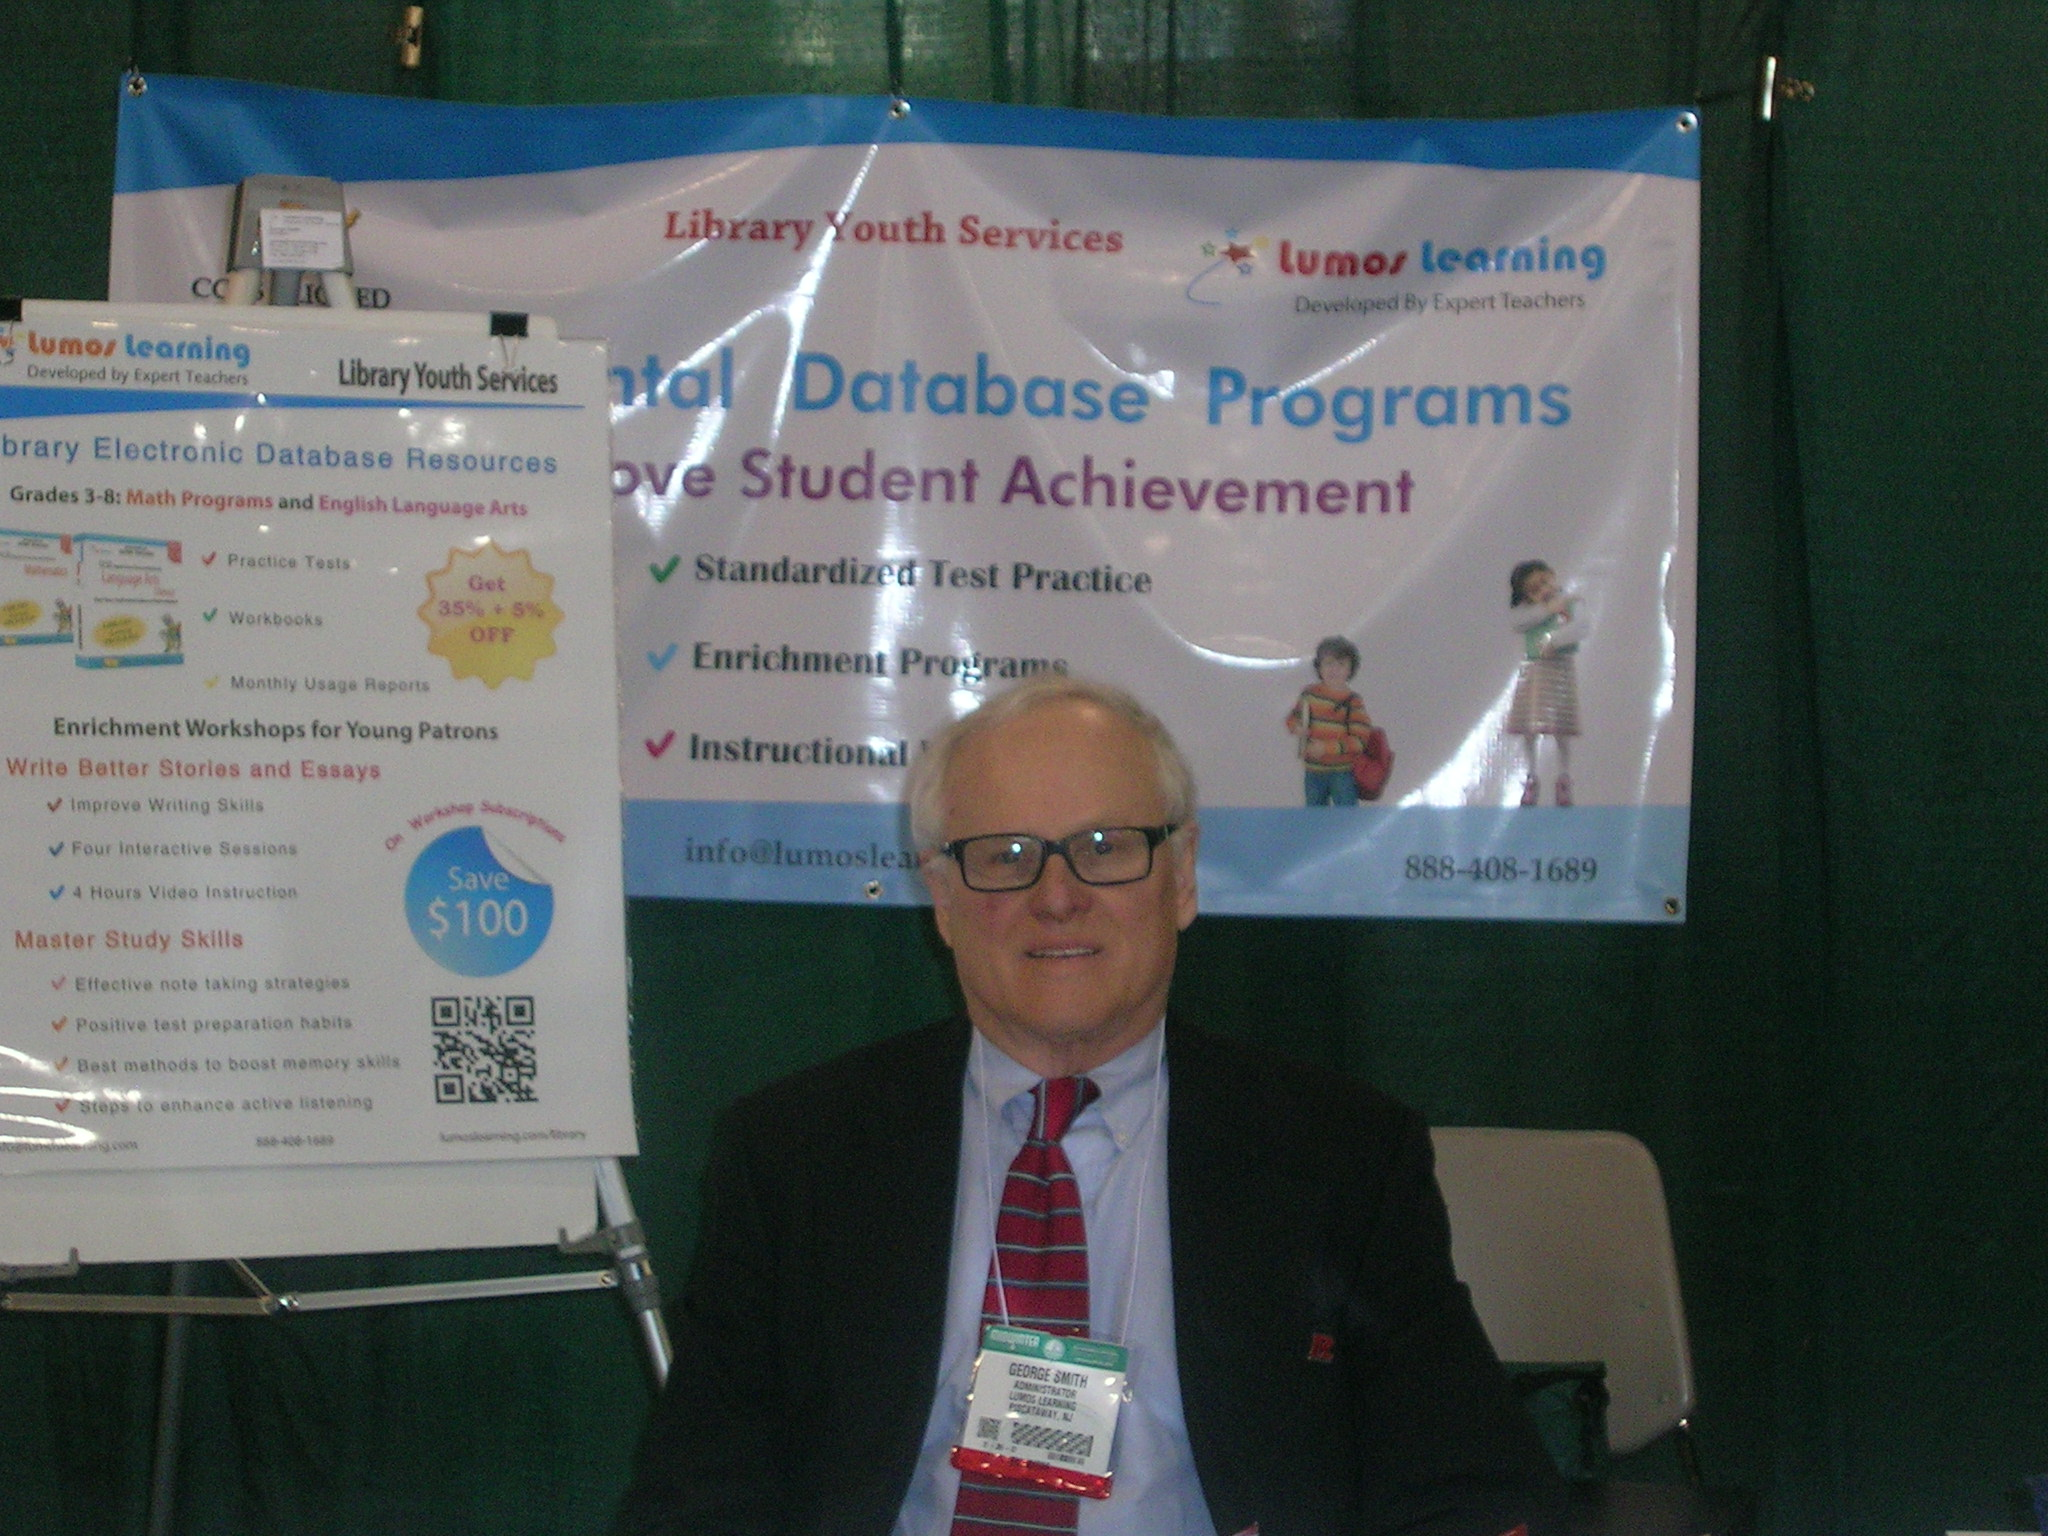 George Smith of Lumos Learning @ 2014 ALA Mid-Winter Meeting